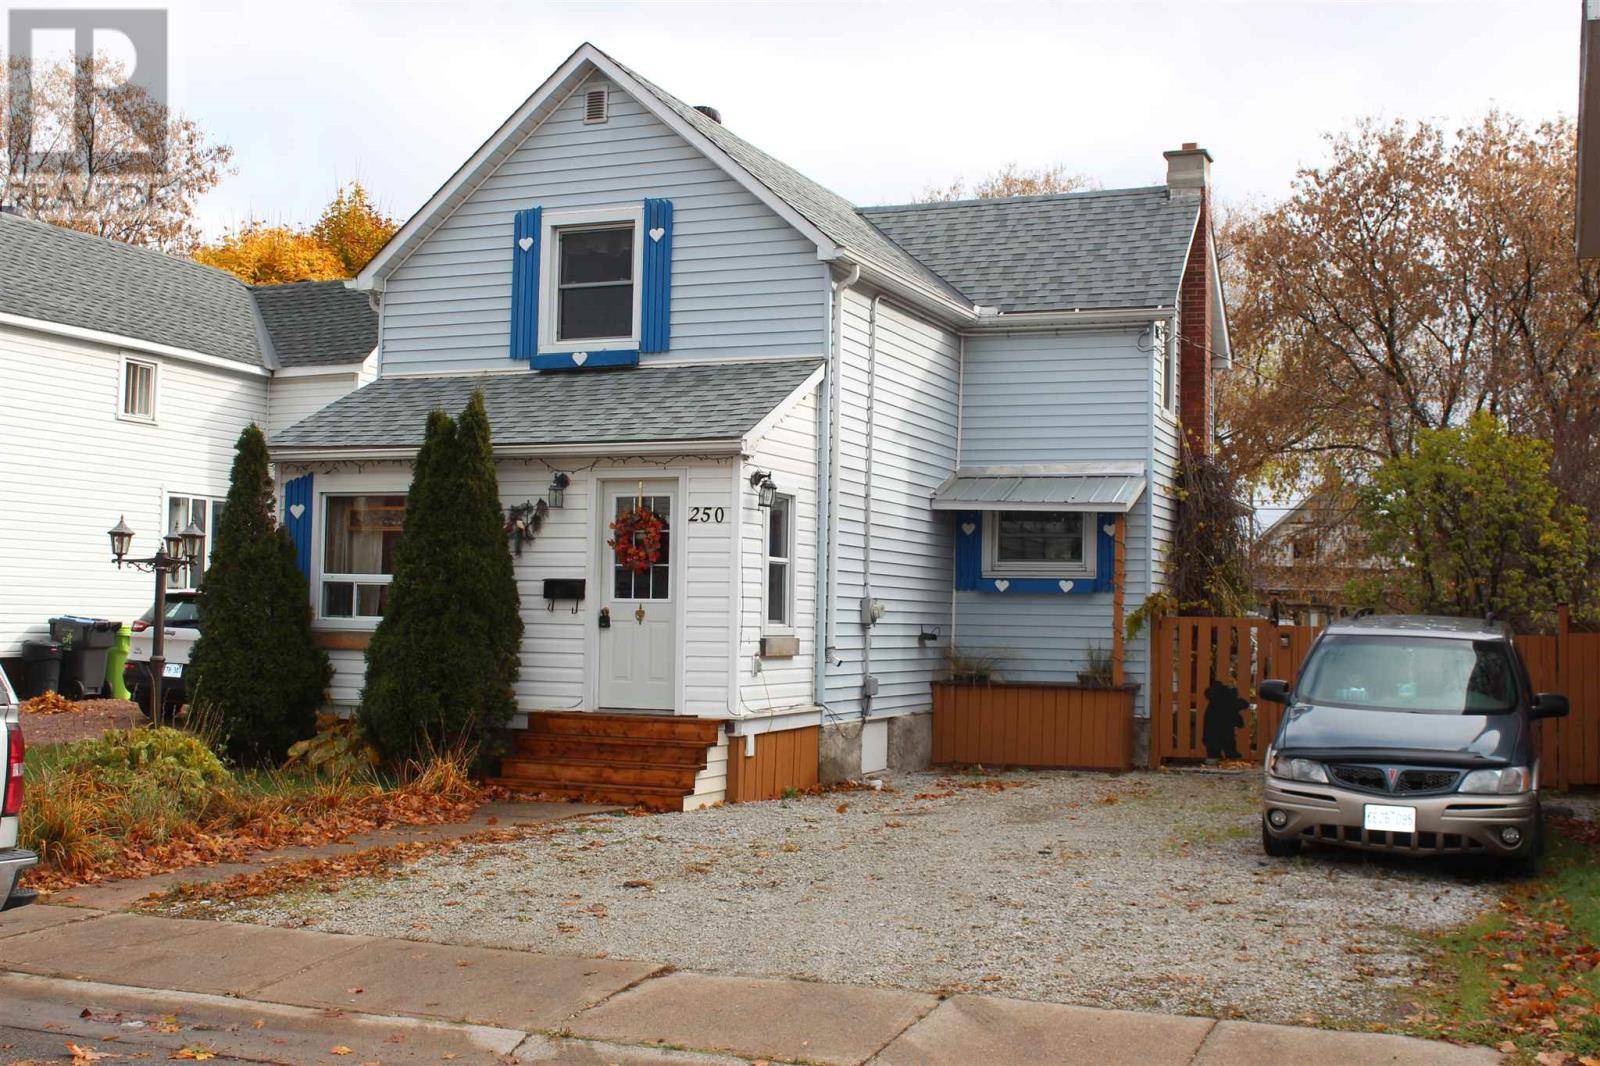 House for sale at 250 St. James St Sault Ste. Marie Ontario - MLS: SM127255